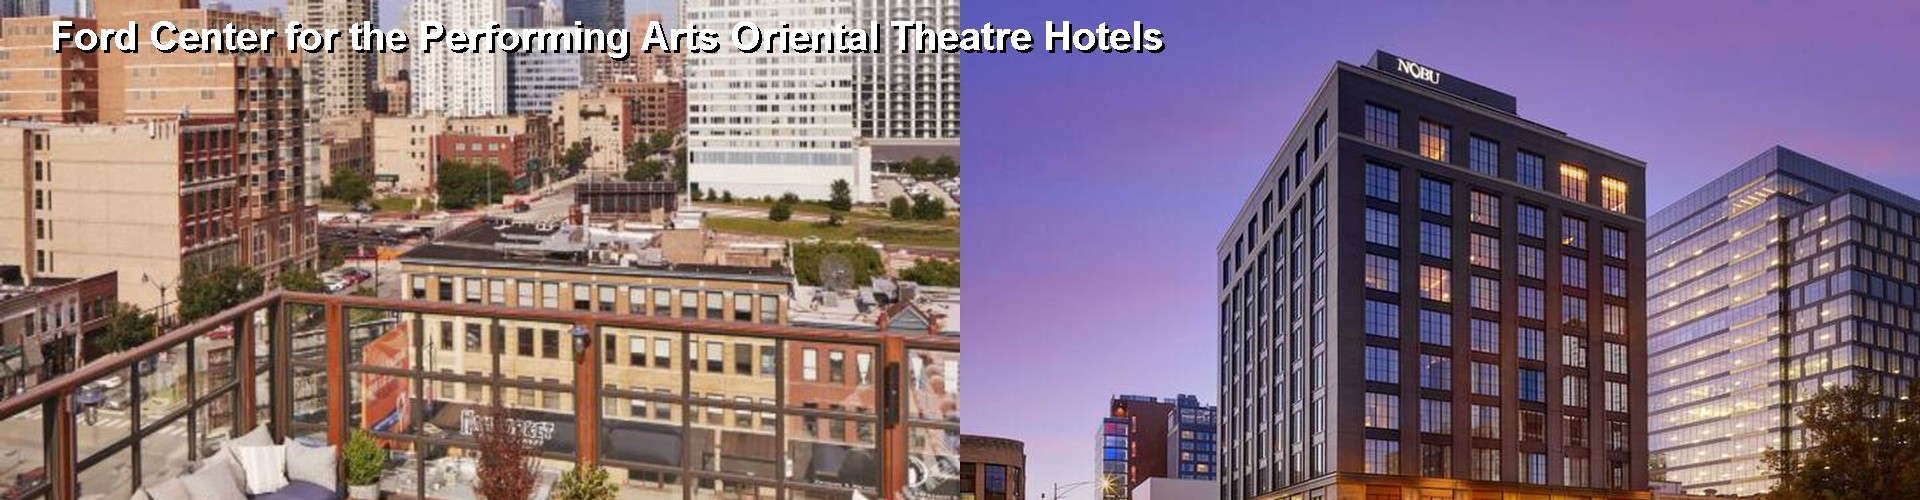 5 Best Hotels near Ford Center for the Performing Arts Oriental Theatre